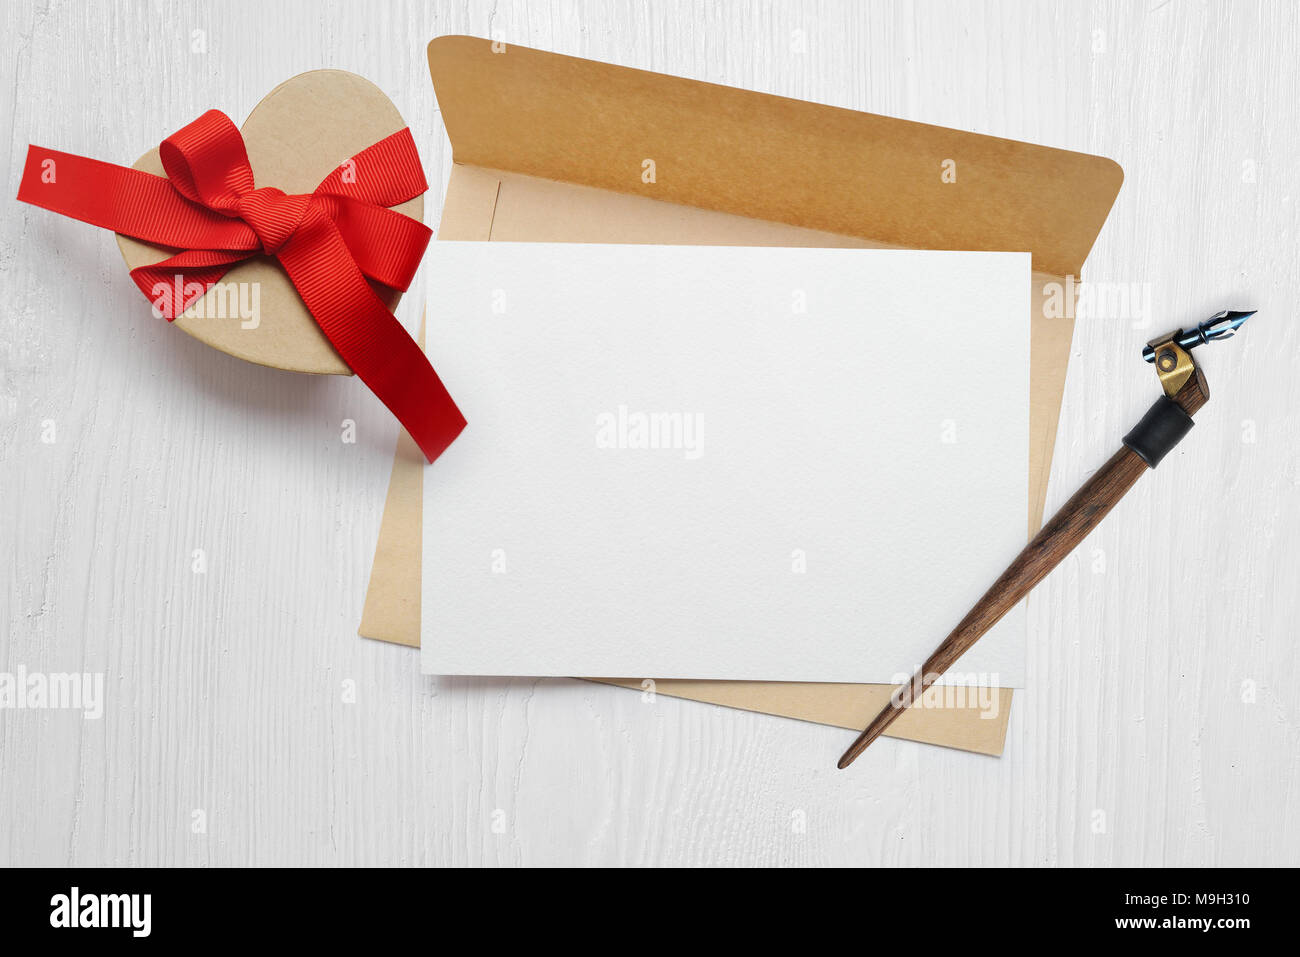 mockup calligraphic feather an envelope with letter and a gift with